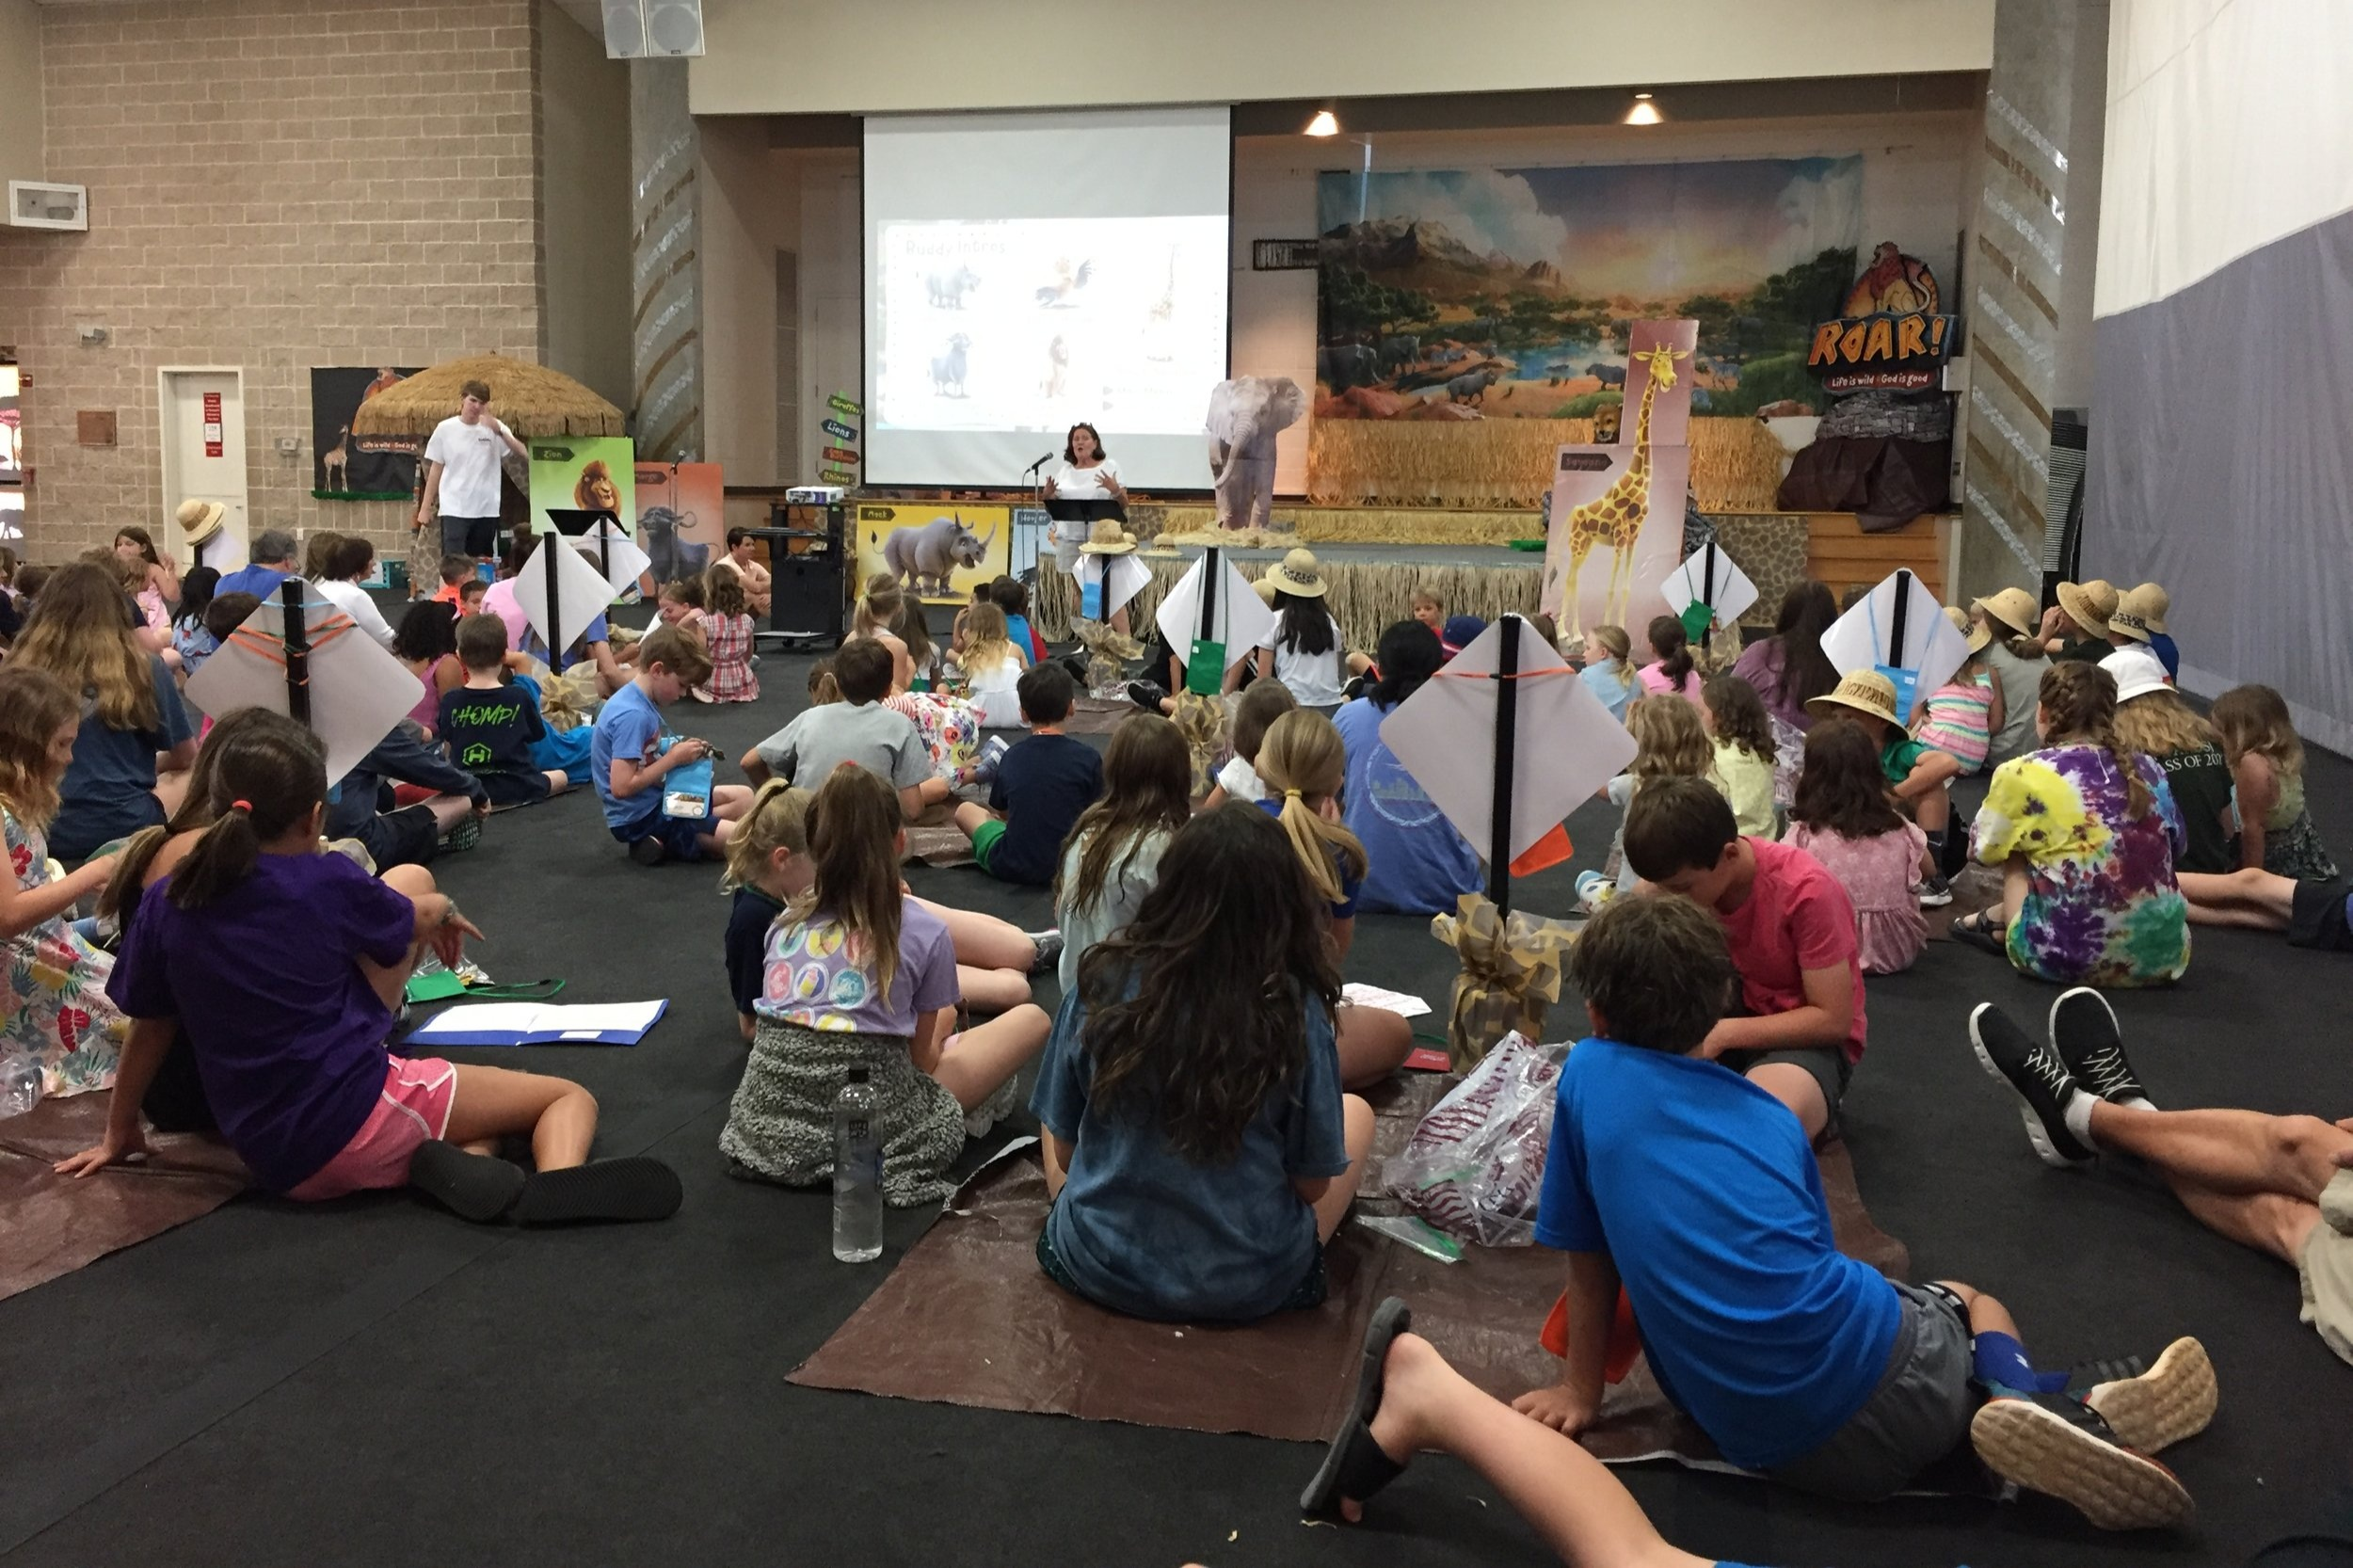 Vacation Bible School - We had a great week of fun-filled Bible adventures teaching us about how life is wild, but God is good!2020 dates and registration will be available Spring 2020.